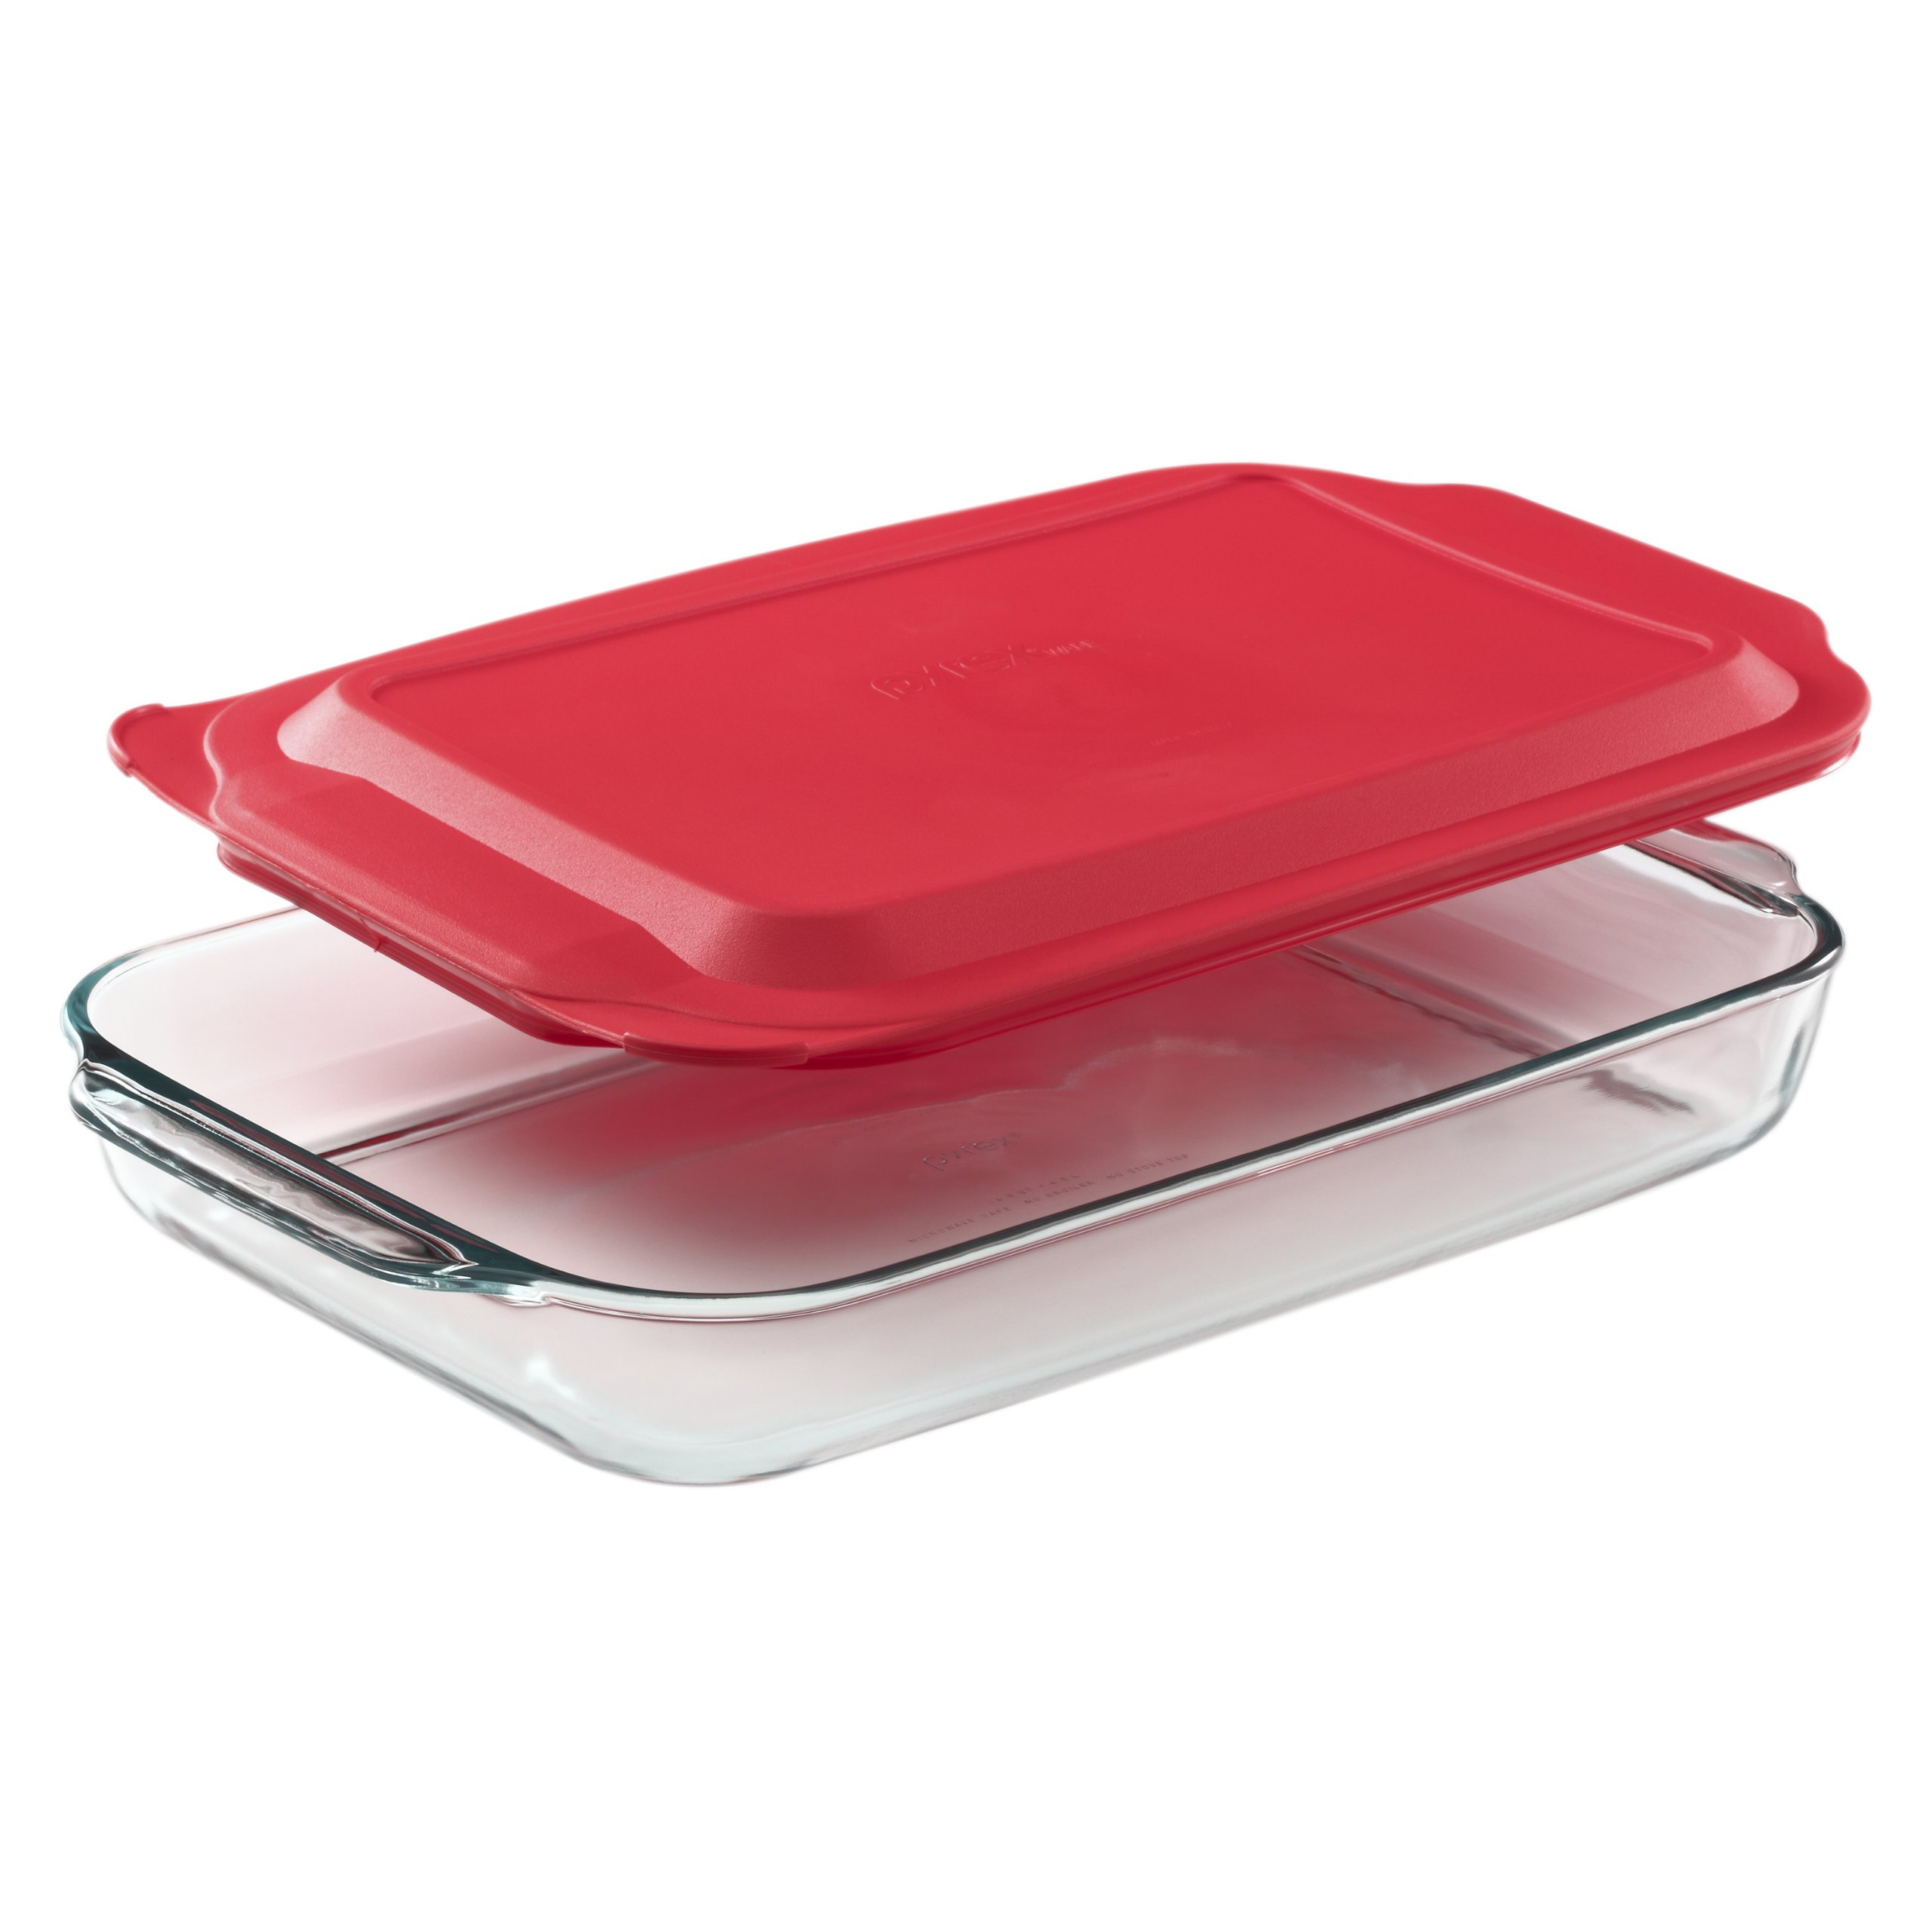 Pyrex 4.8-qt Oblong Baking Dish with Red Lid by Pyrex